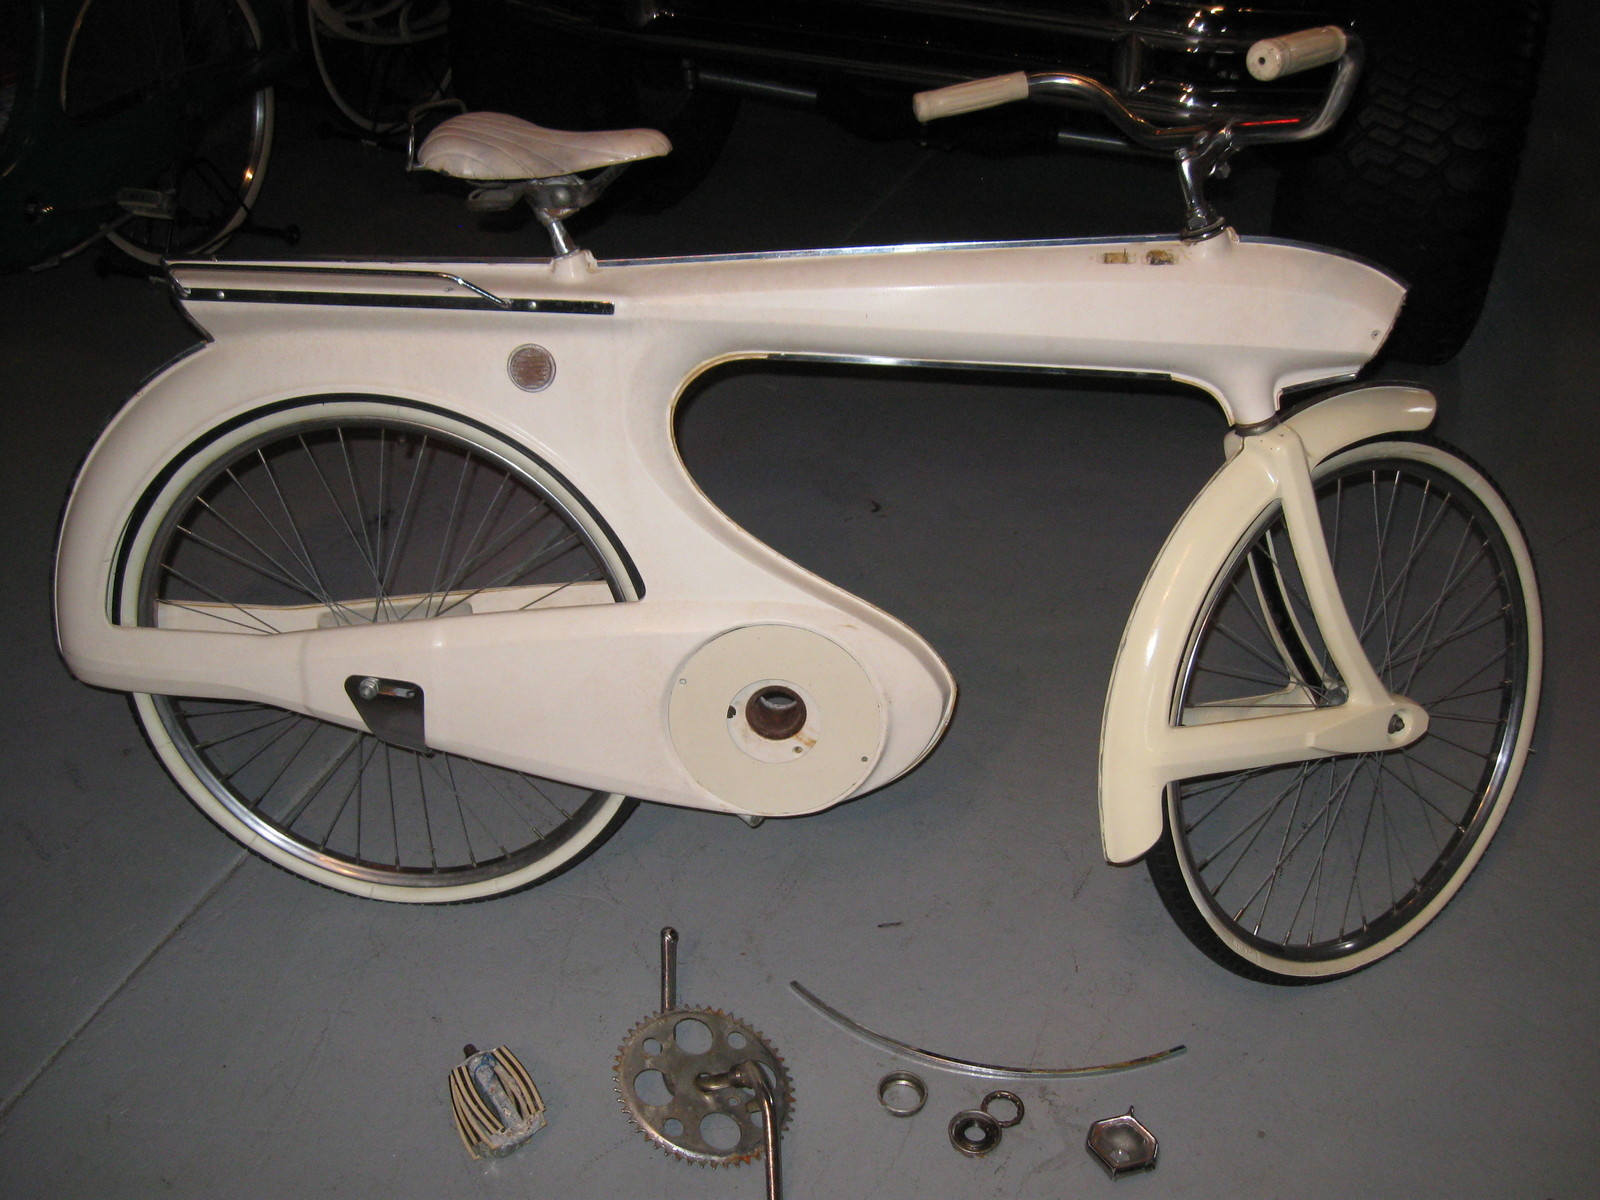 Bike 1964 Bowden 300 E Spacelander Space Bicycle Art Deco Rare